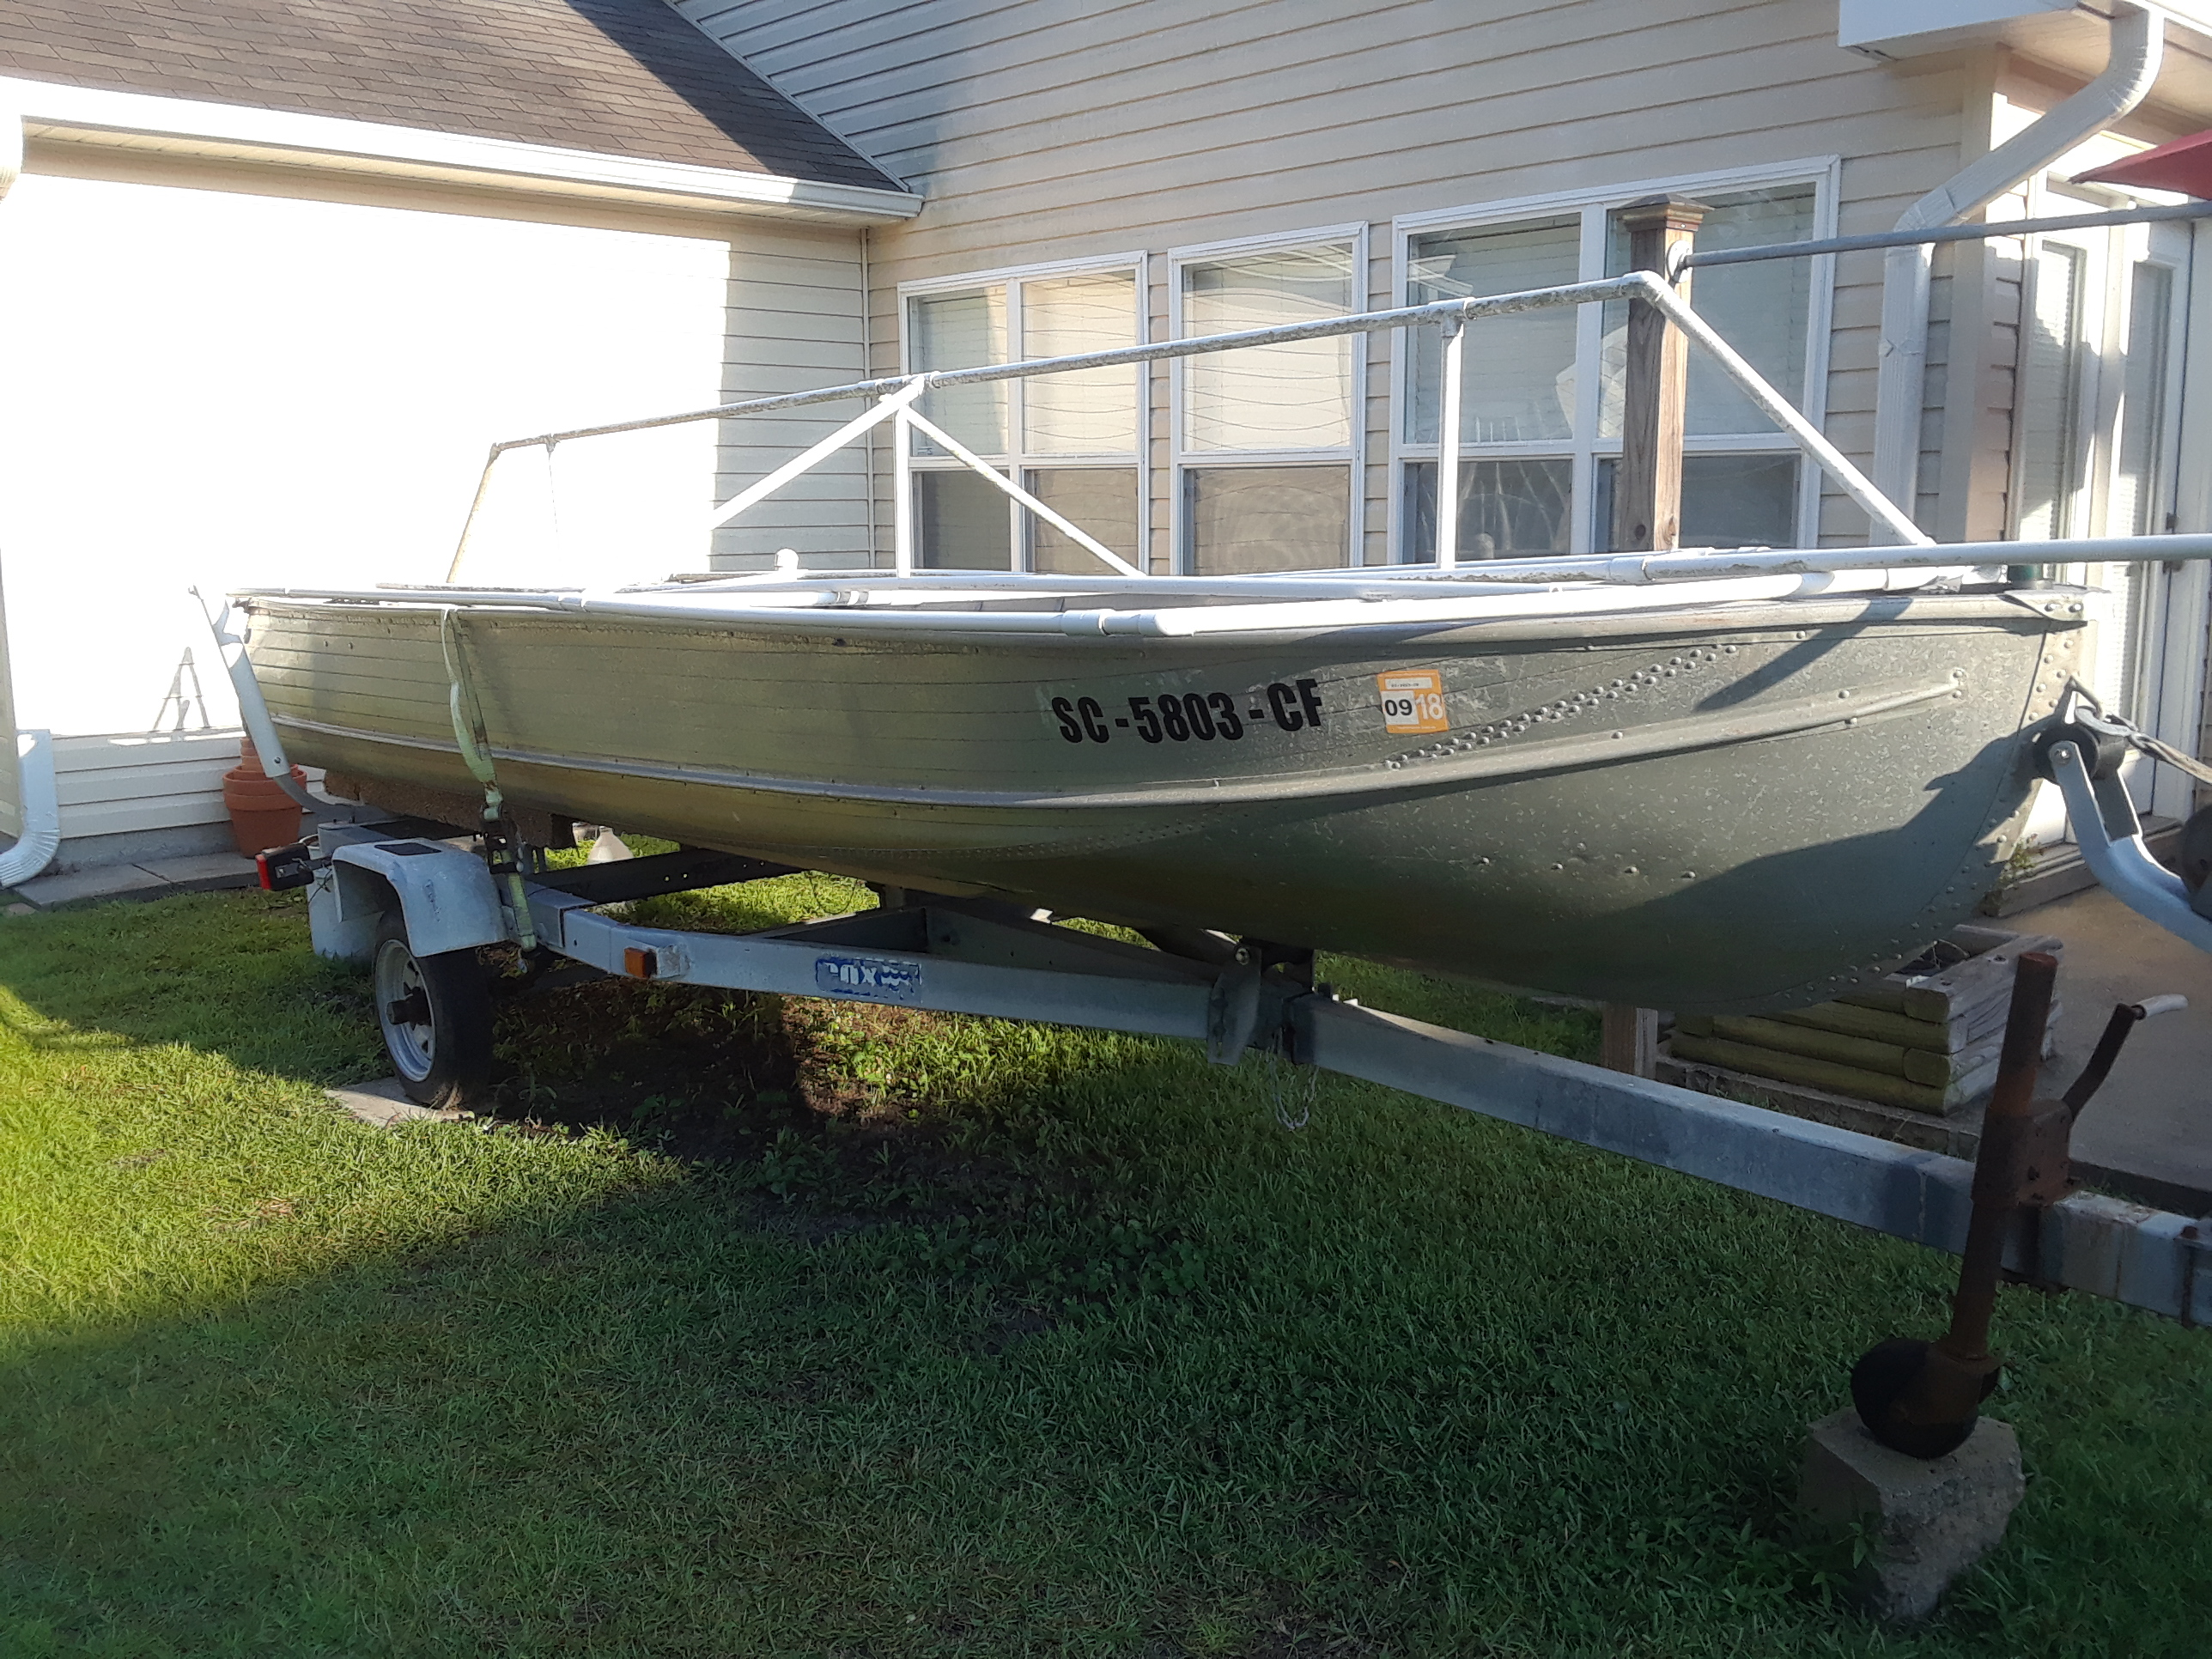 16' Aluminum Fishing Boat includes 15HP Suzuki Motor